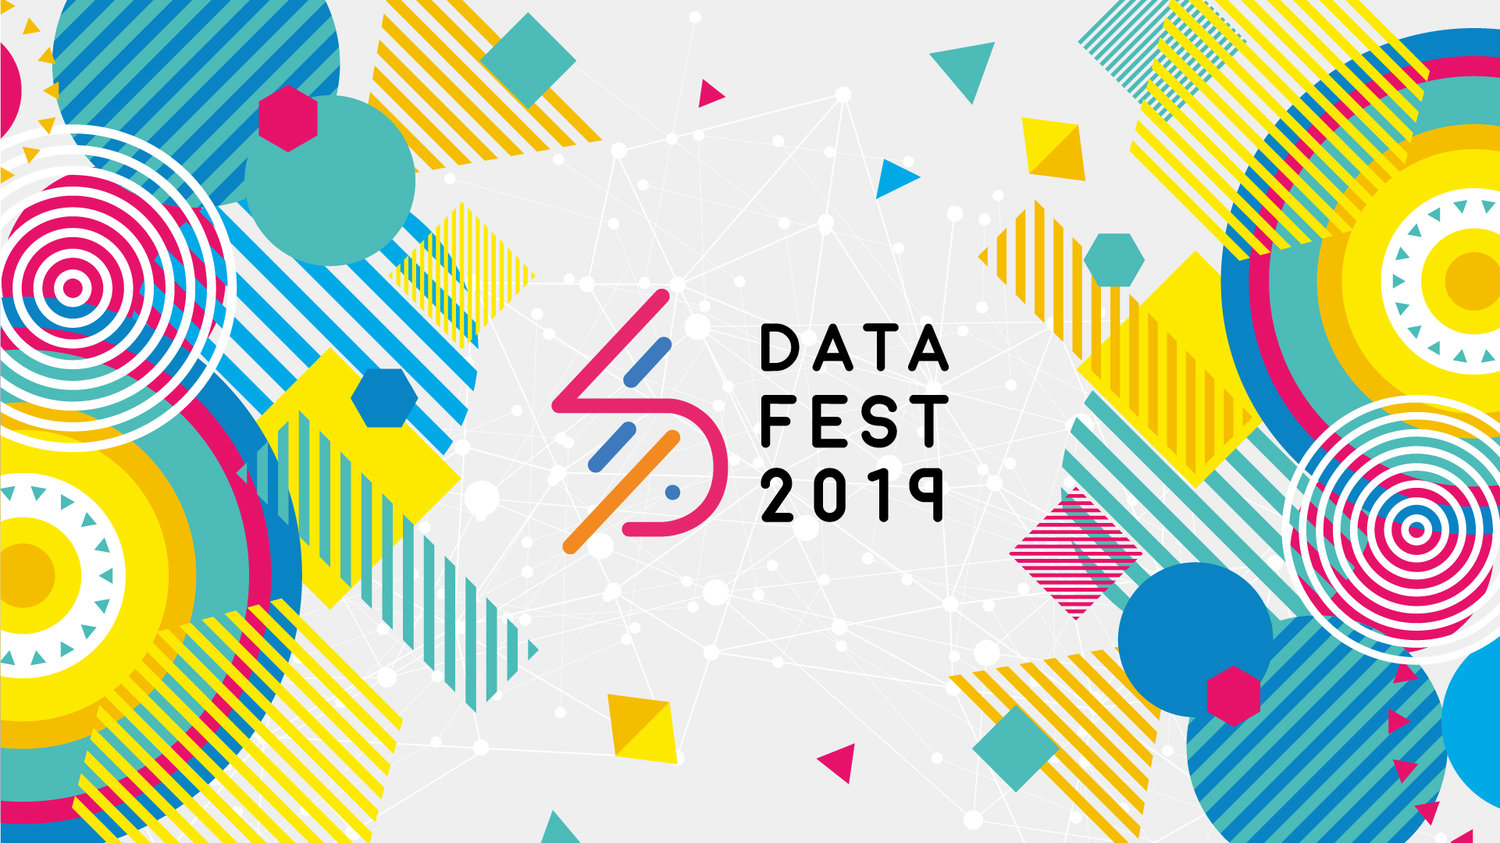 DataFest19 - Data events hosted across Scotland from the 11th to